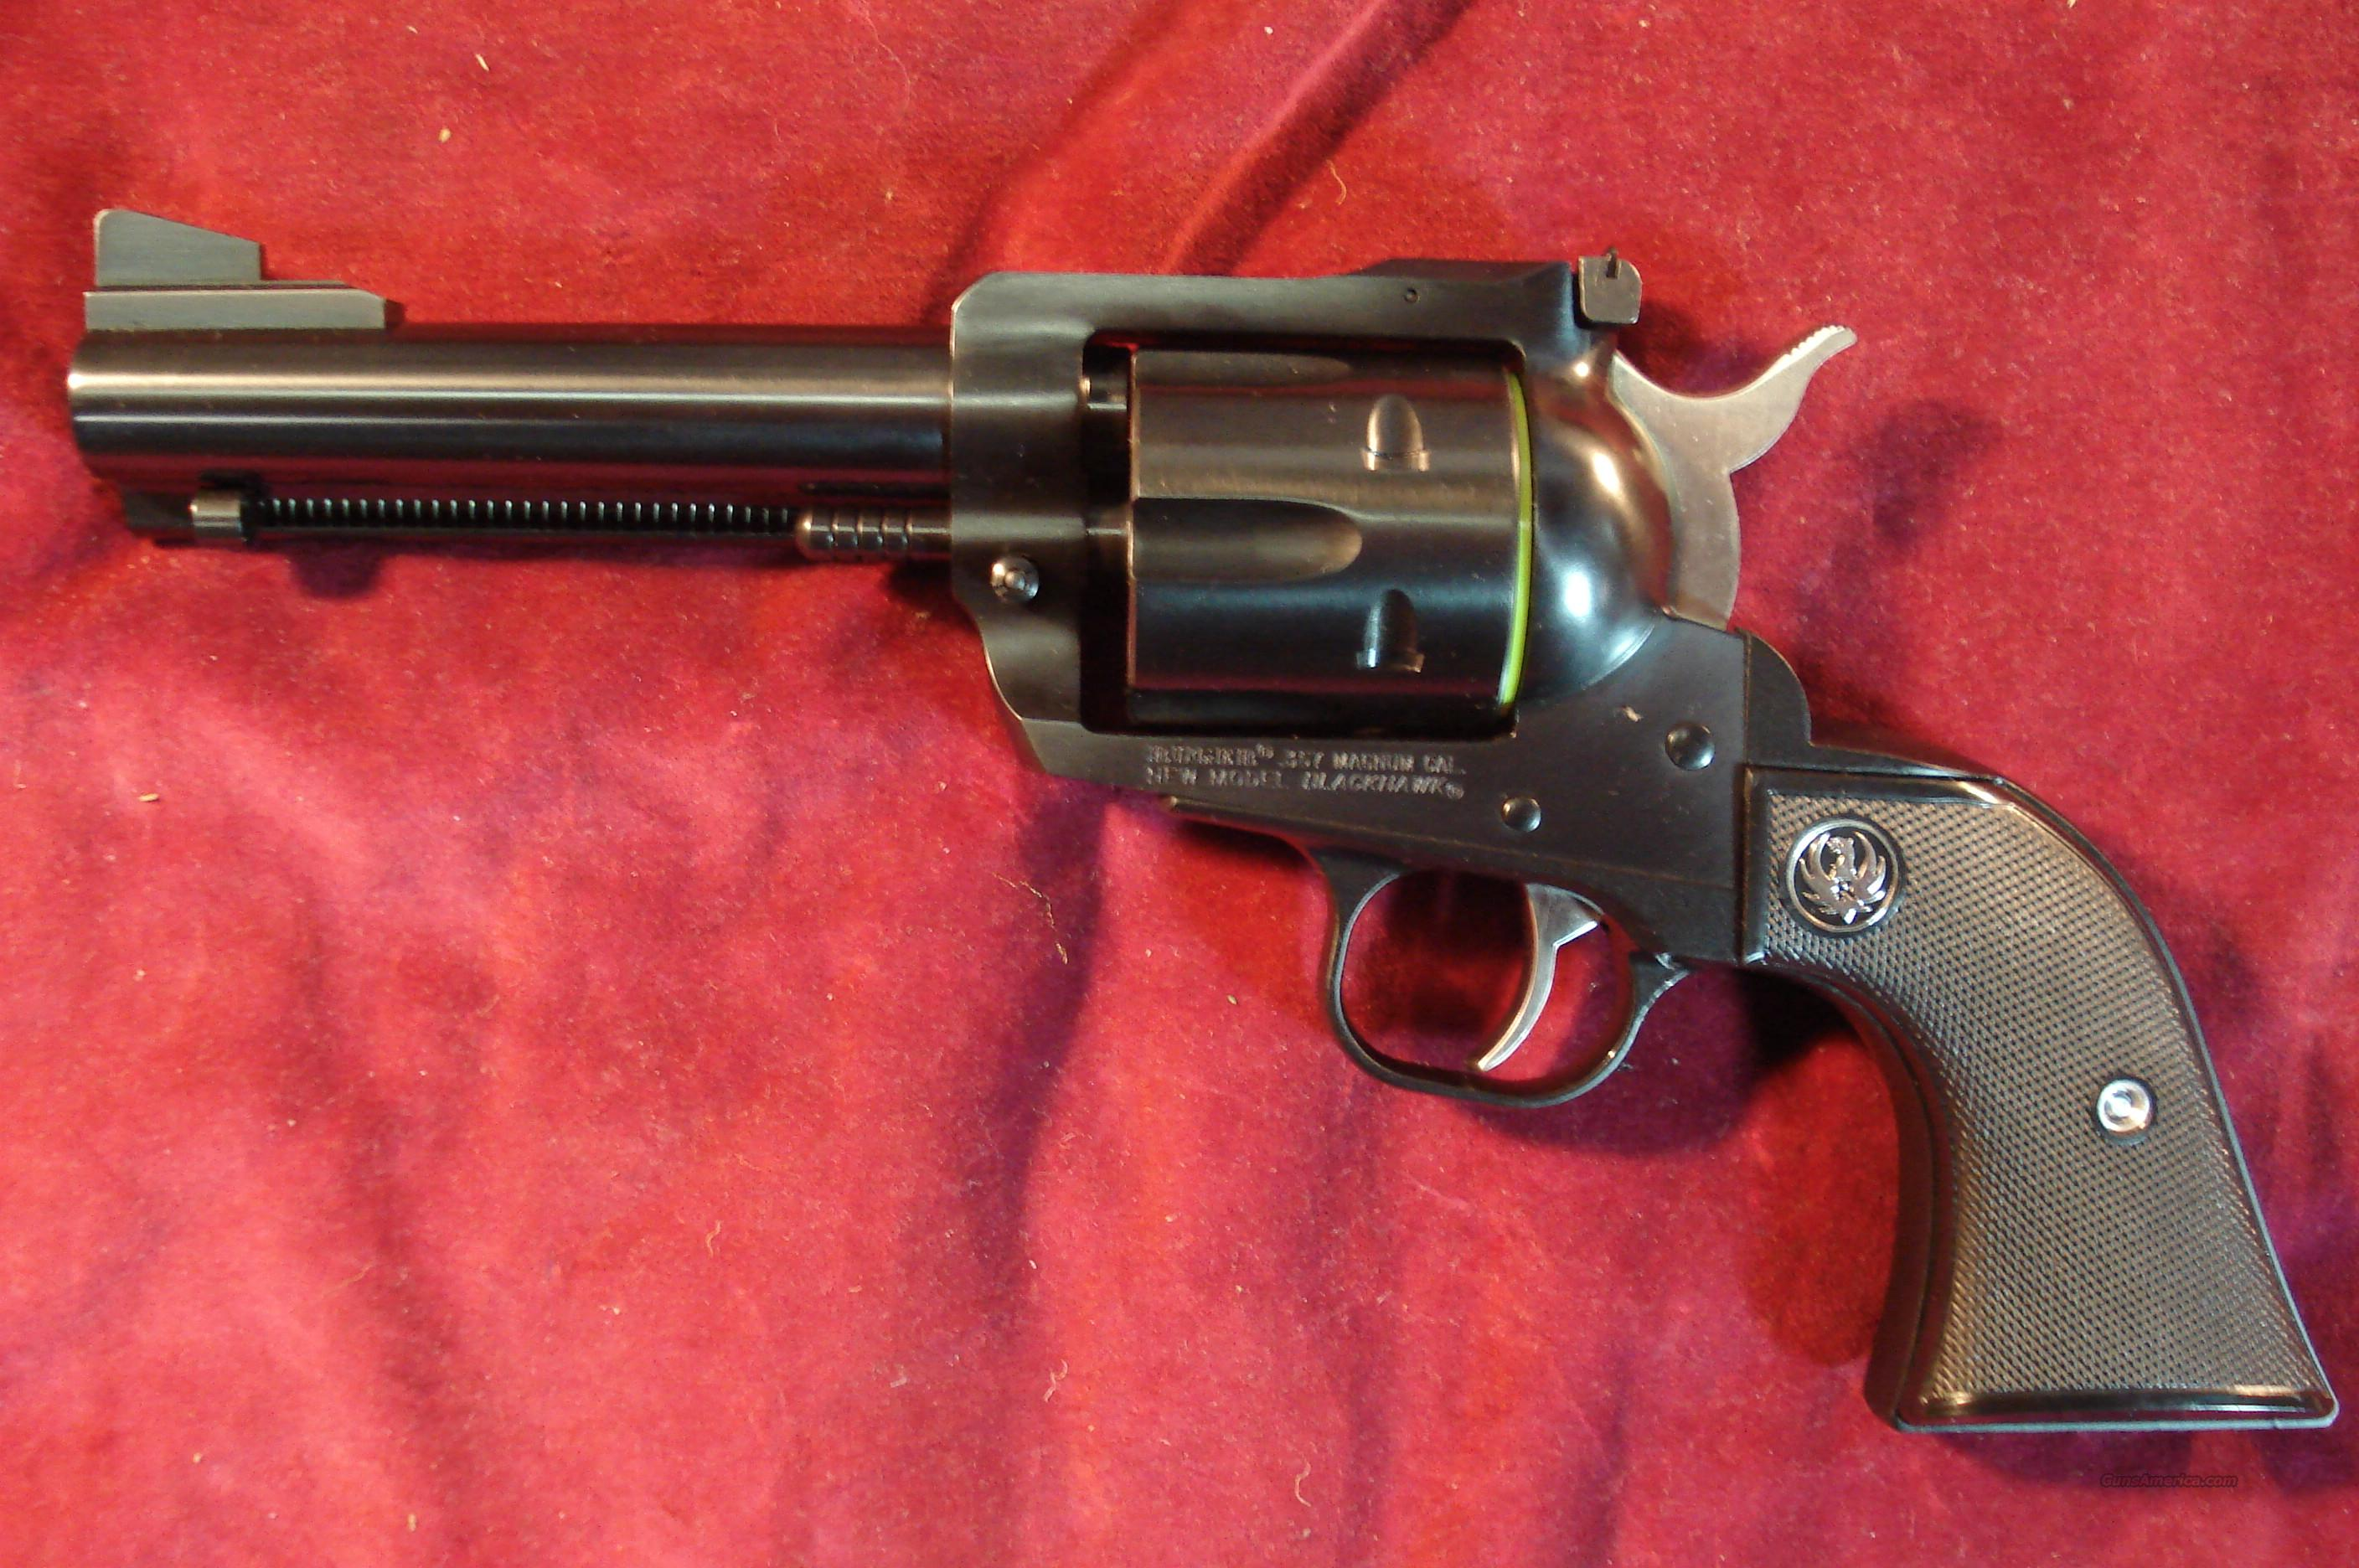 "RUGER BLACKHAWK CONVERTIBLE 357/9MM CAL 4 5/8"" BLUED NEW  Guns > Pistols > Ruger Single Action Revolvers > Blackhawk Type"